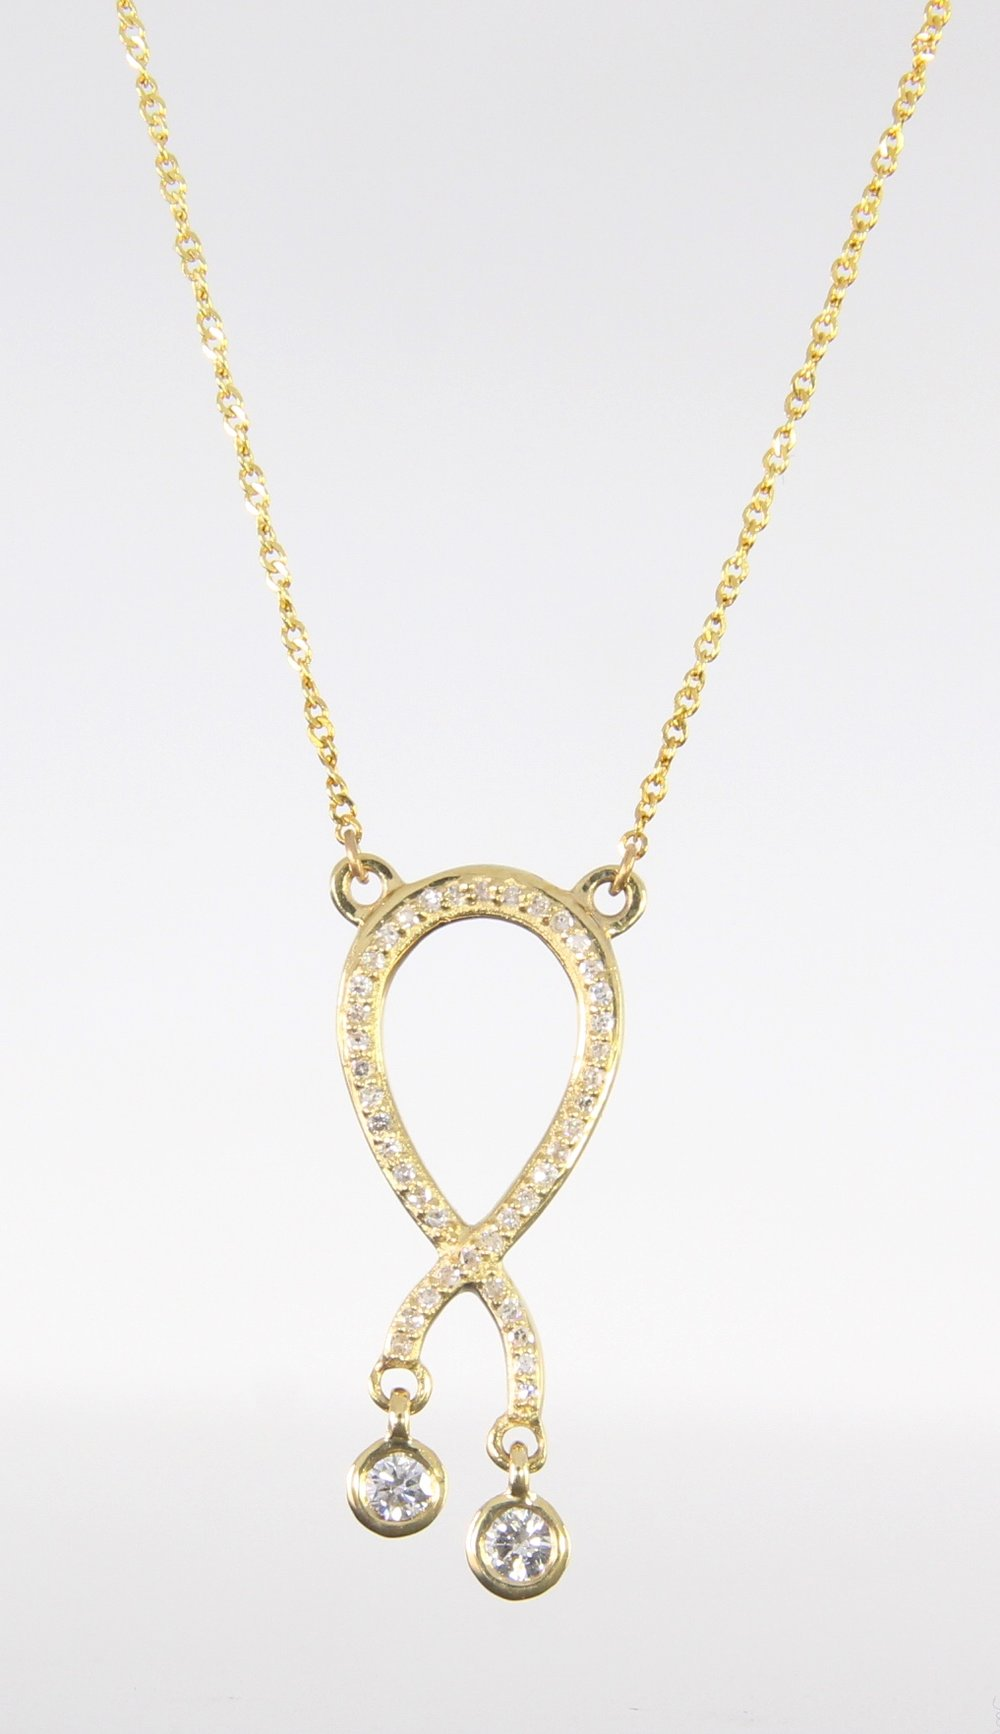 unique-diamond-fashion-pendant-ribbon-pendant-yellow-gold-delicate-necklace-grand-rapids-jewelry-store